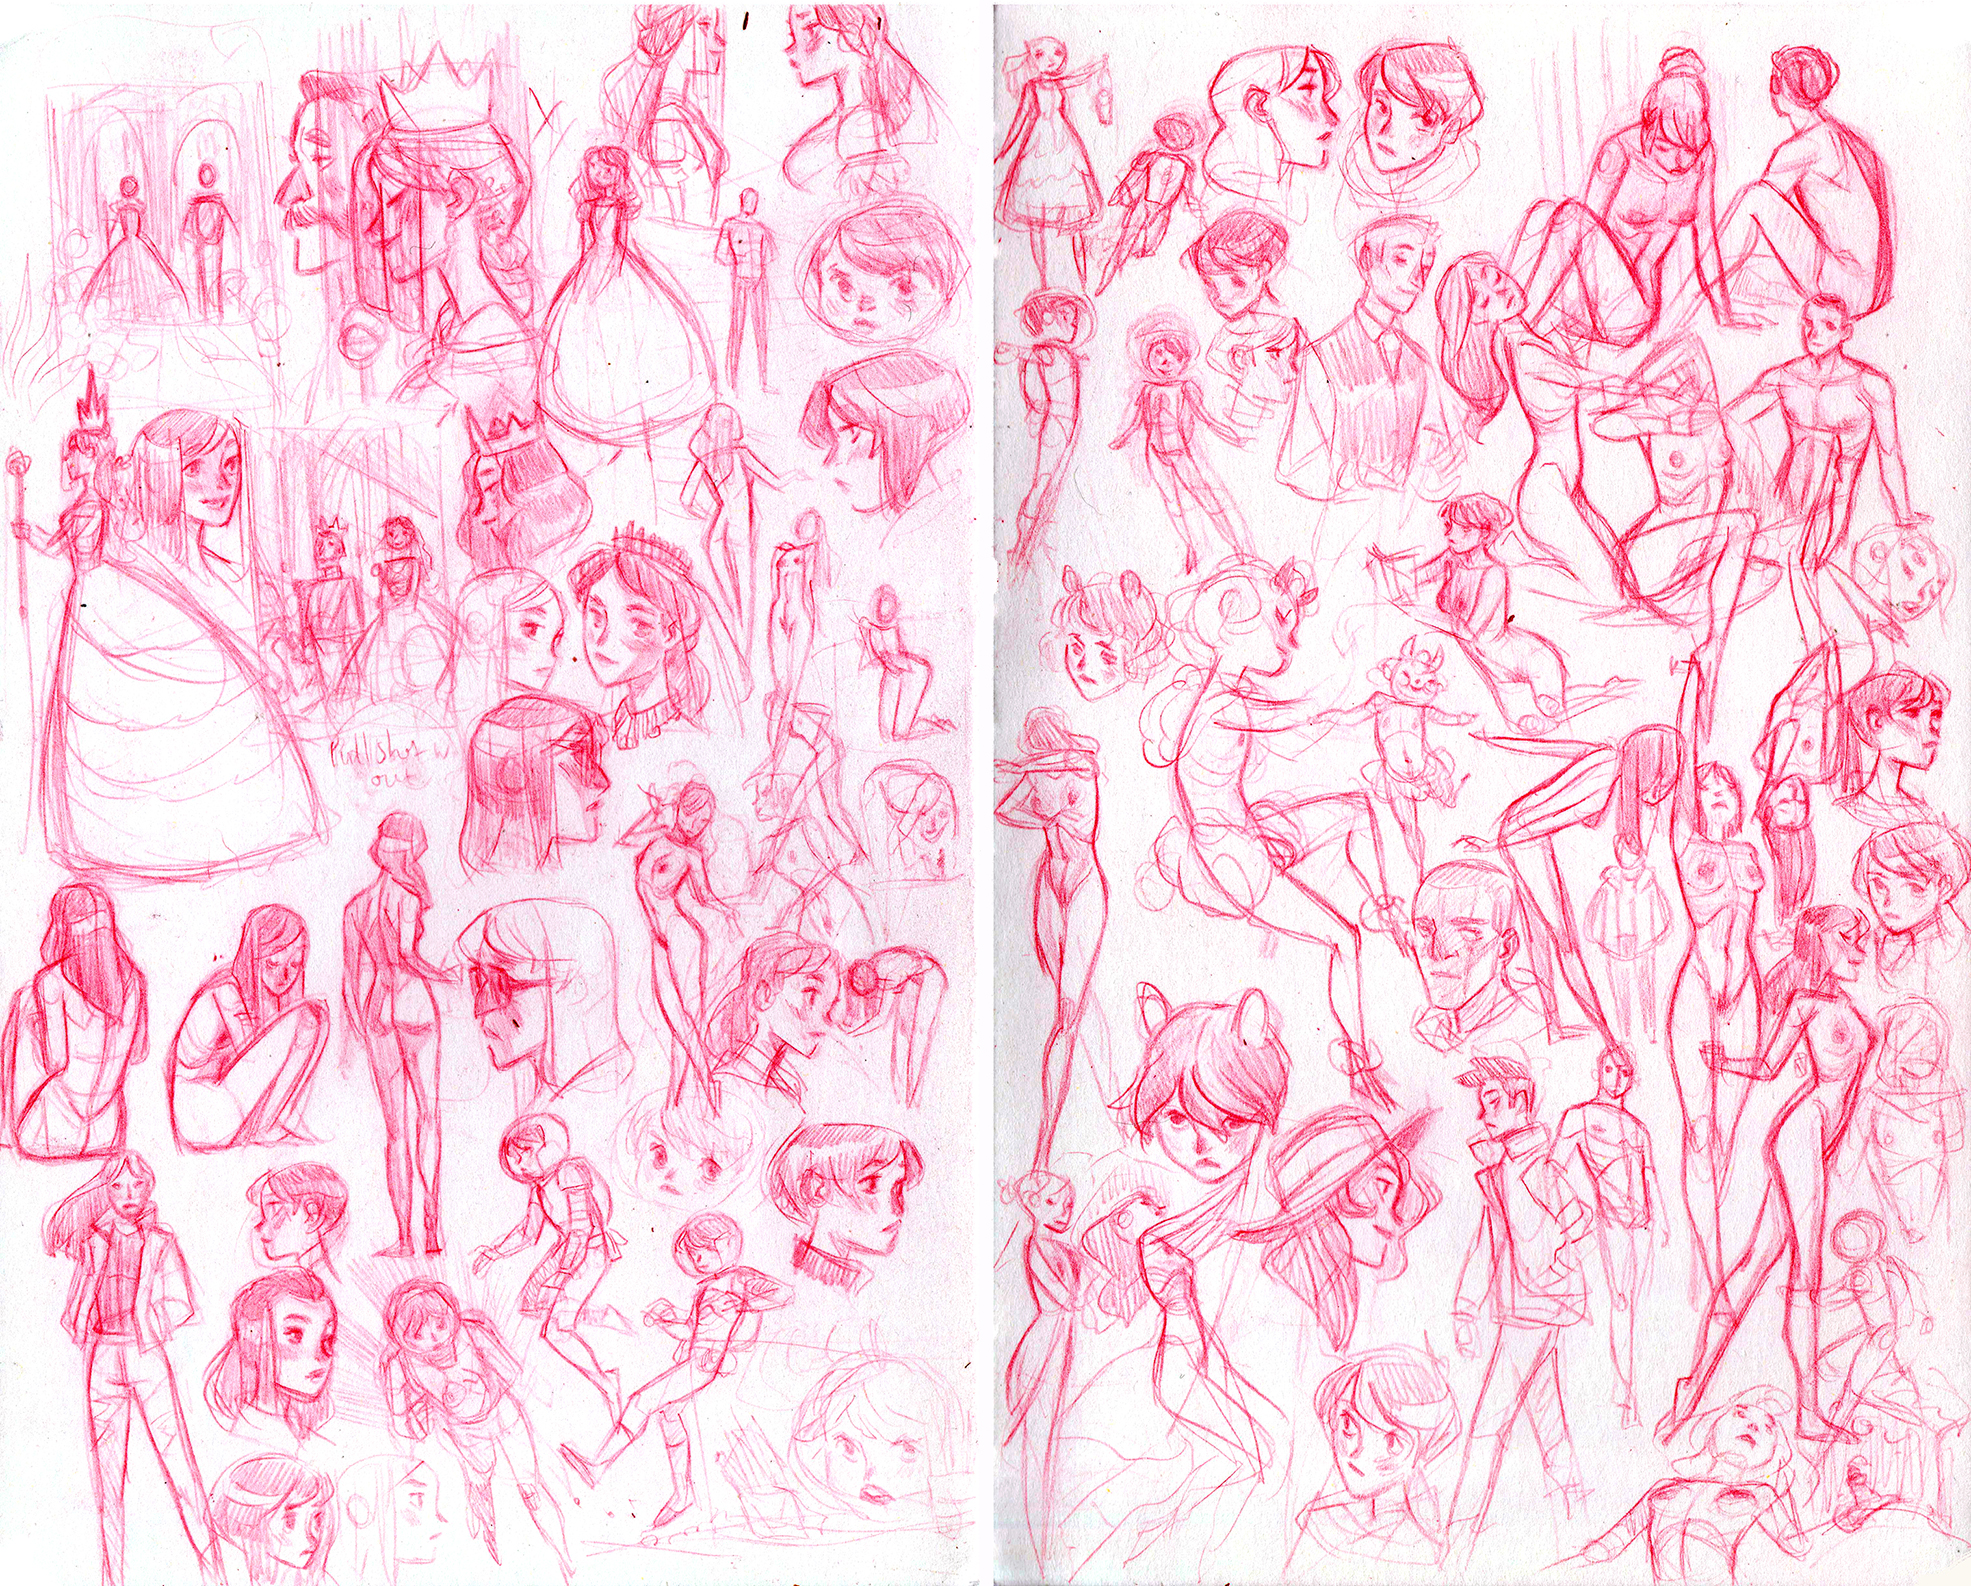 Sketches 4